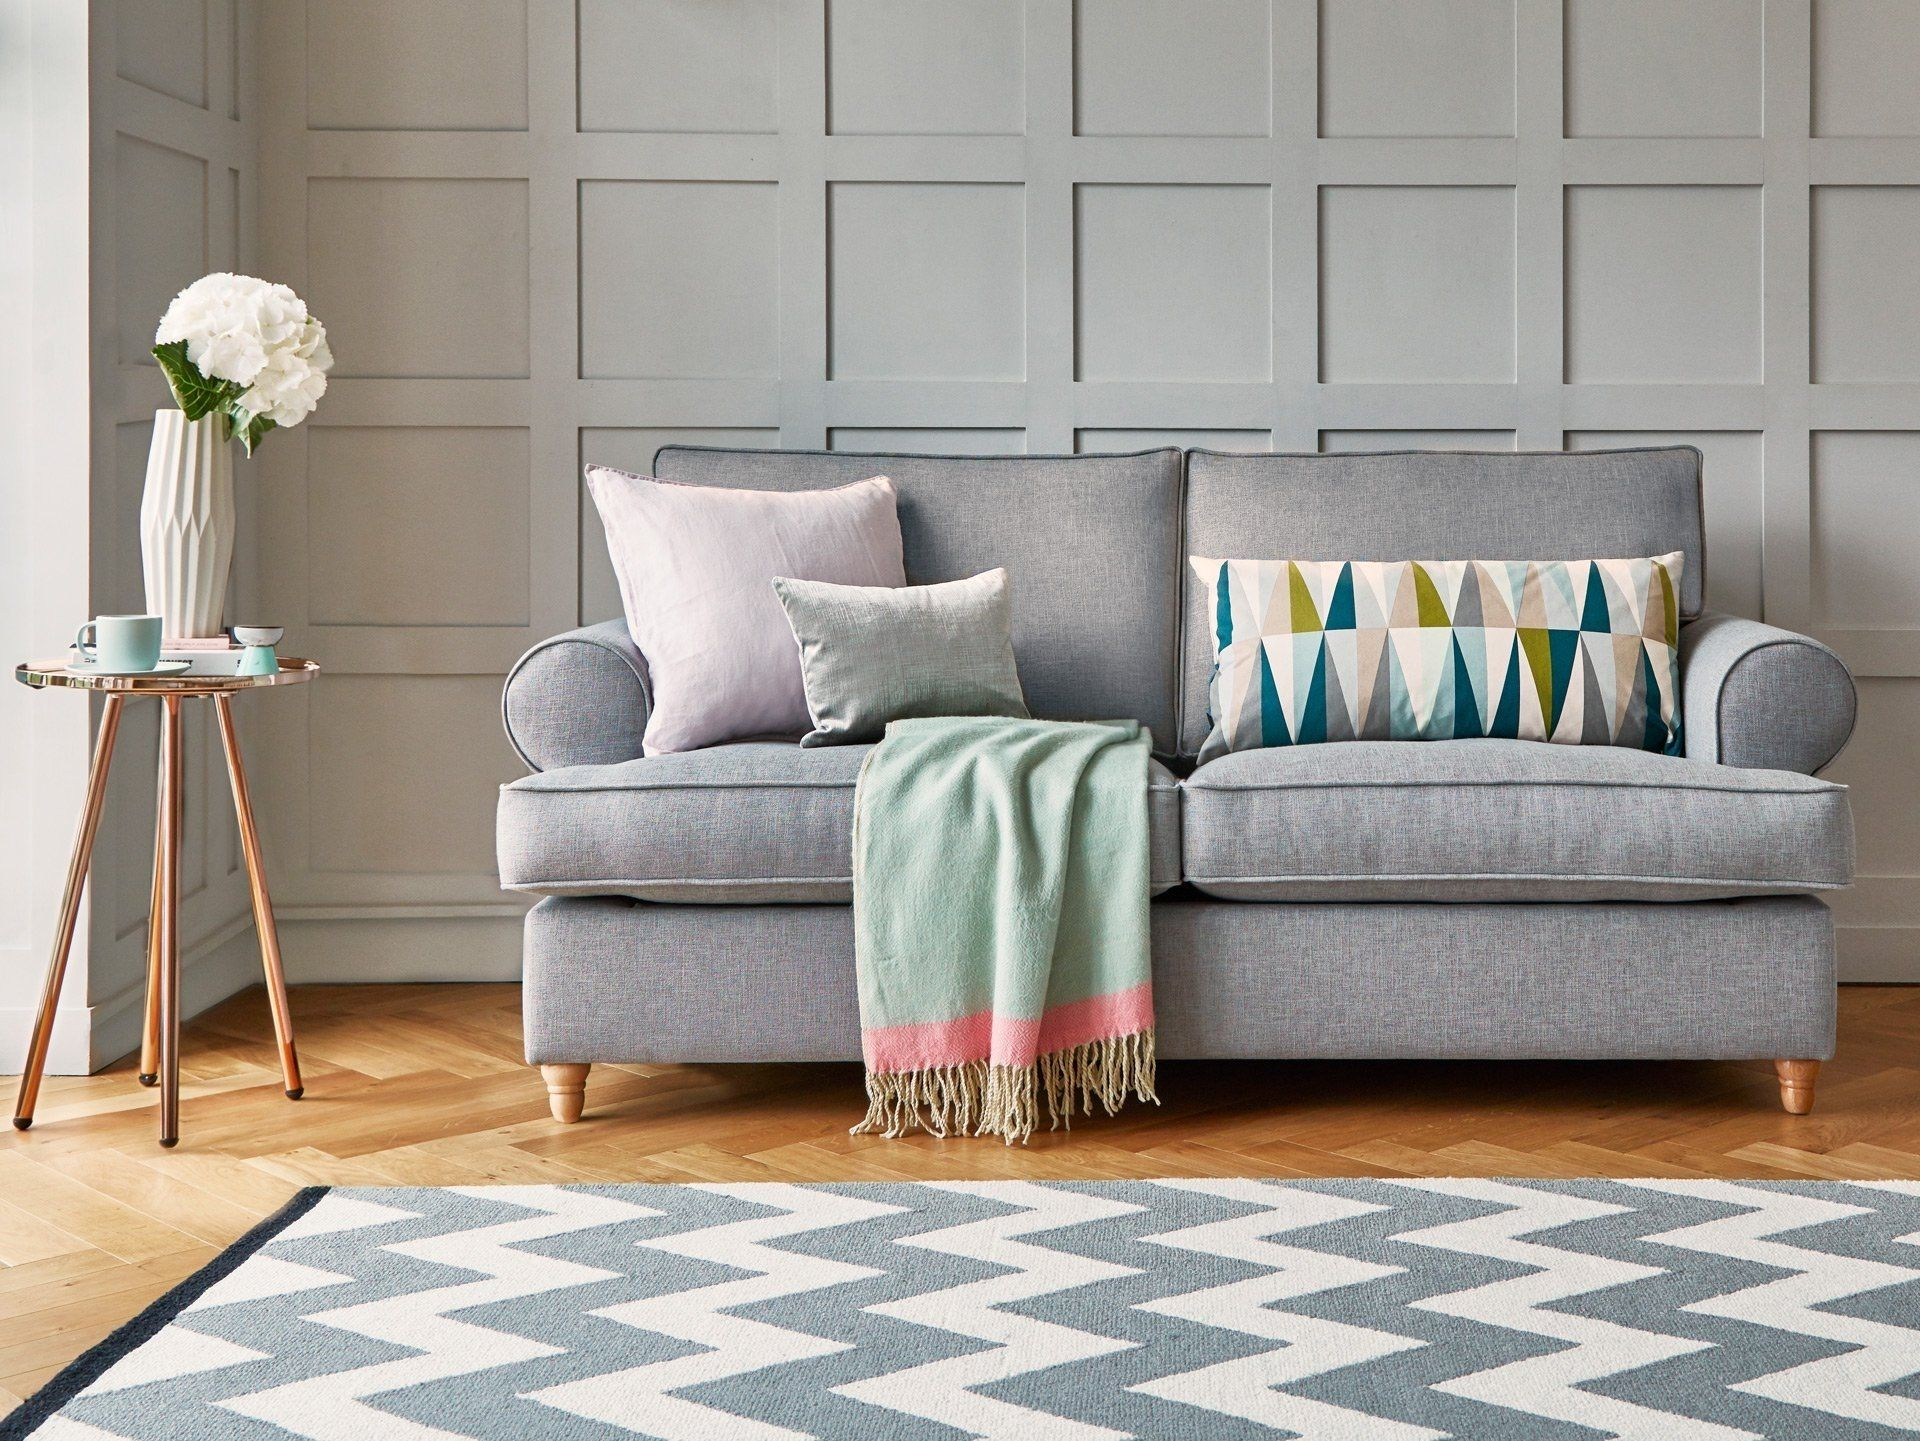 The Buttermere Sofa Bed Sofa bed uk, Sofa bed, Luxury sofa